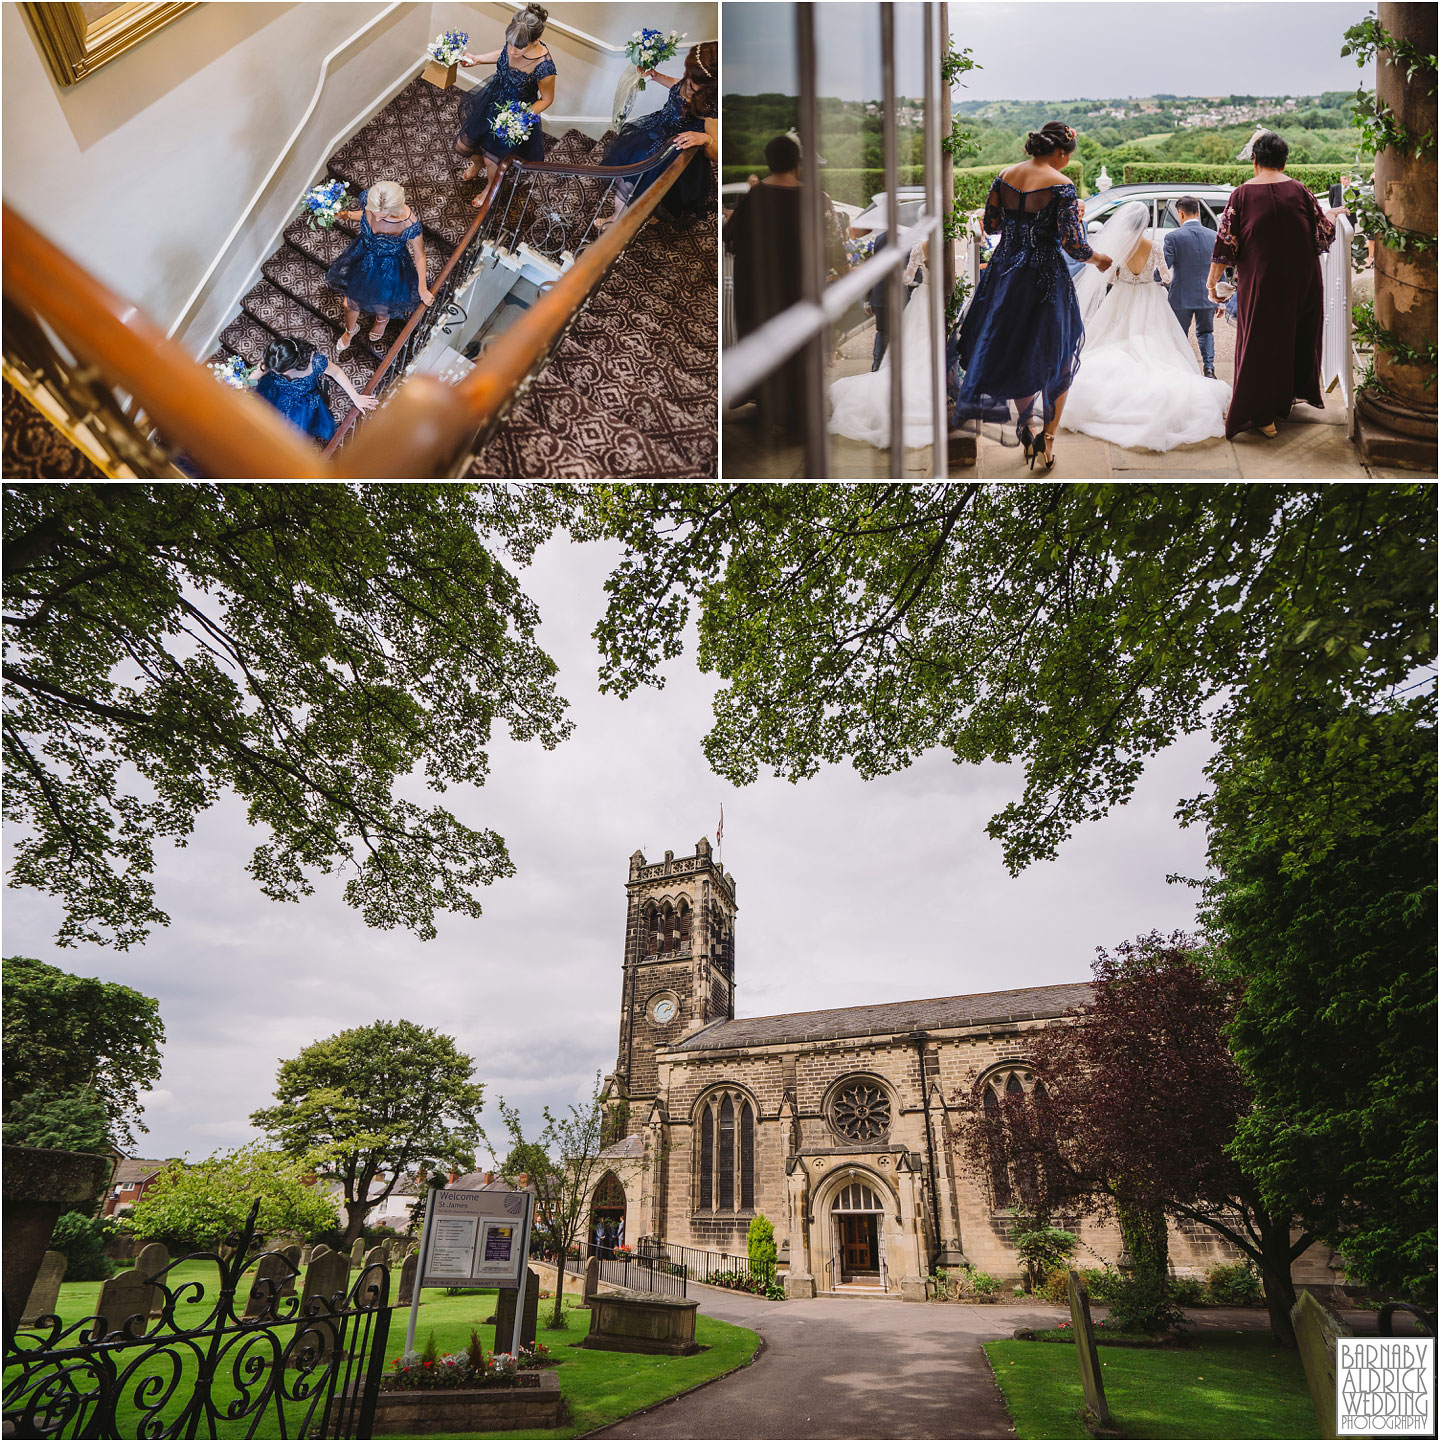 Wedding Photography at St James' church in Wetherby